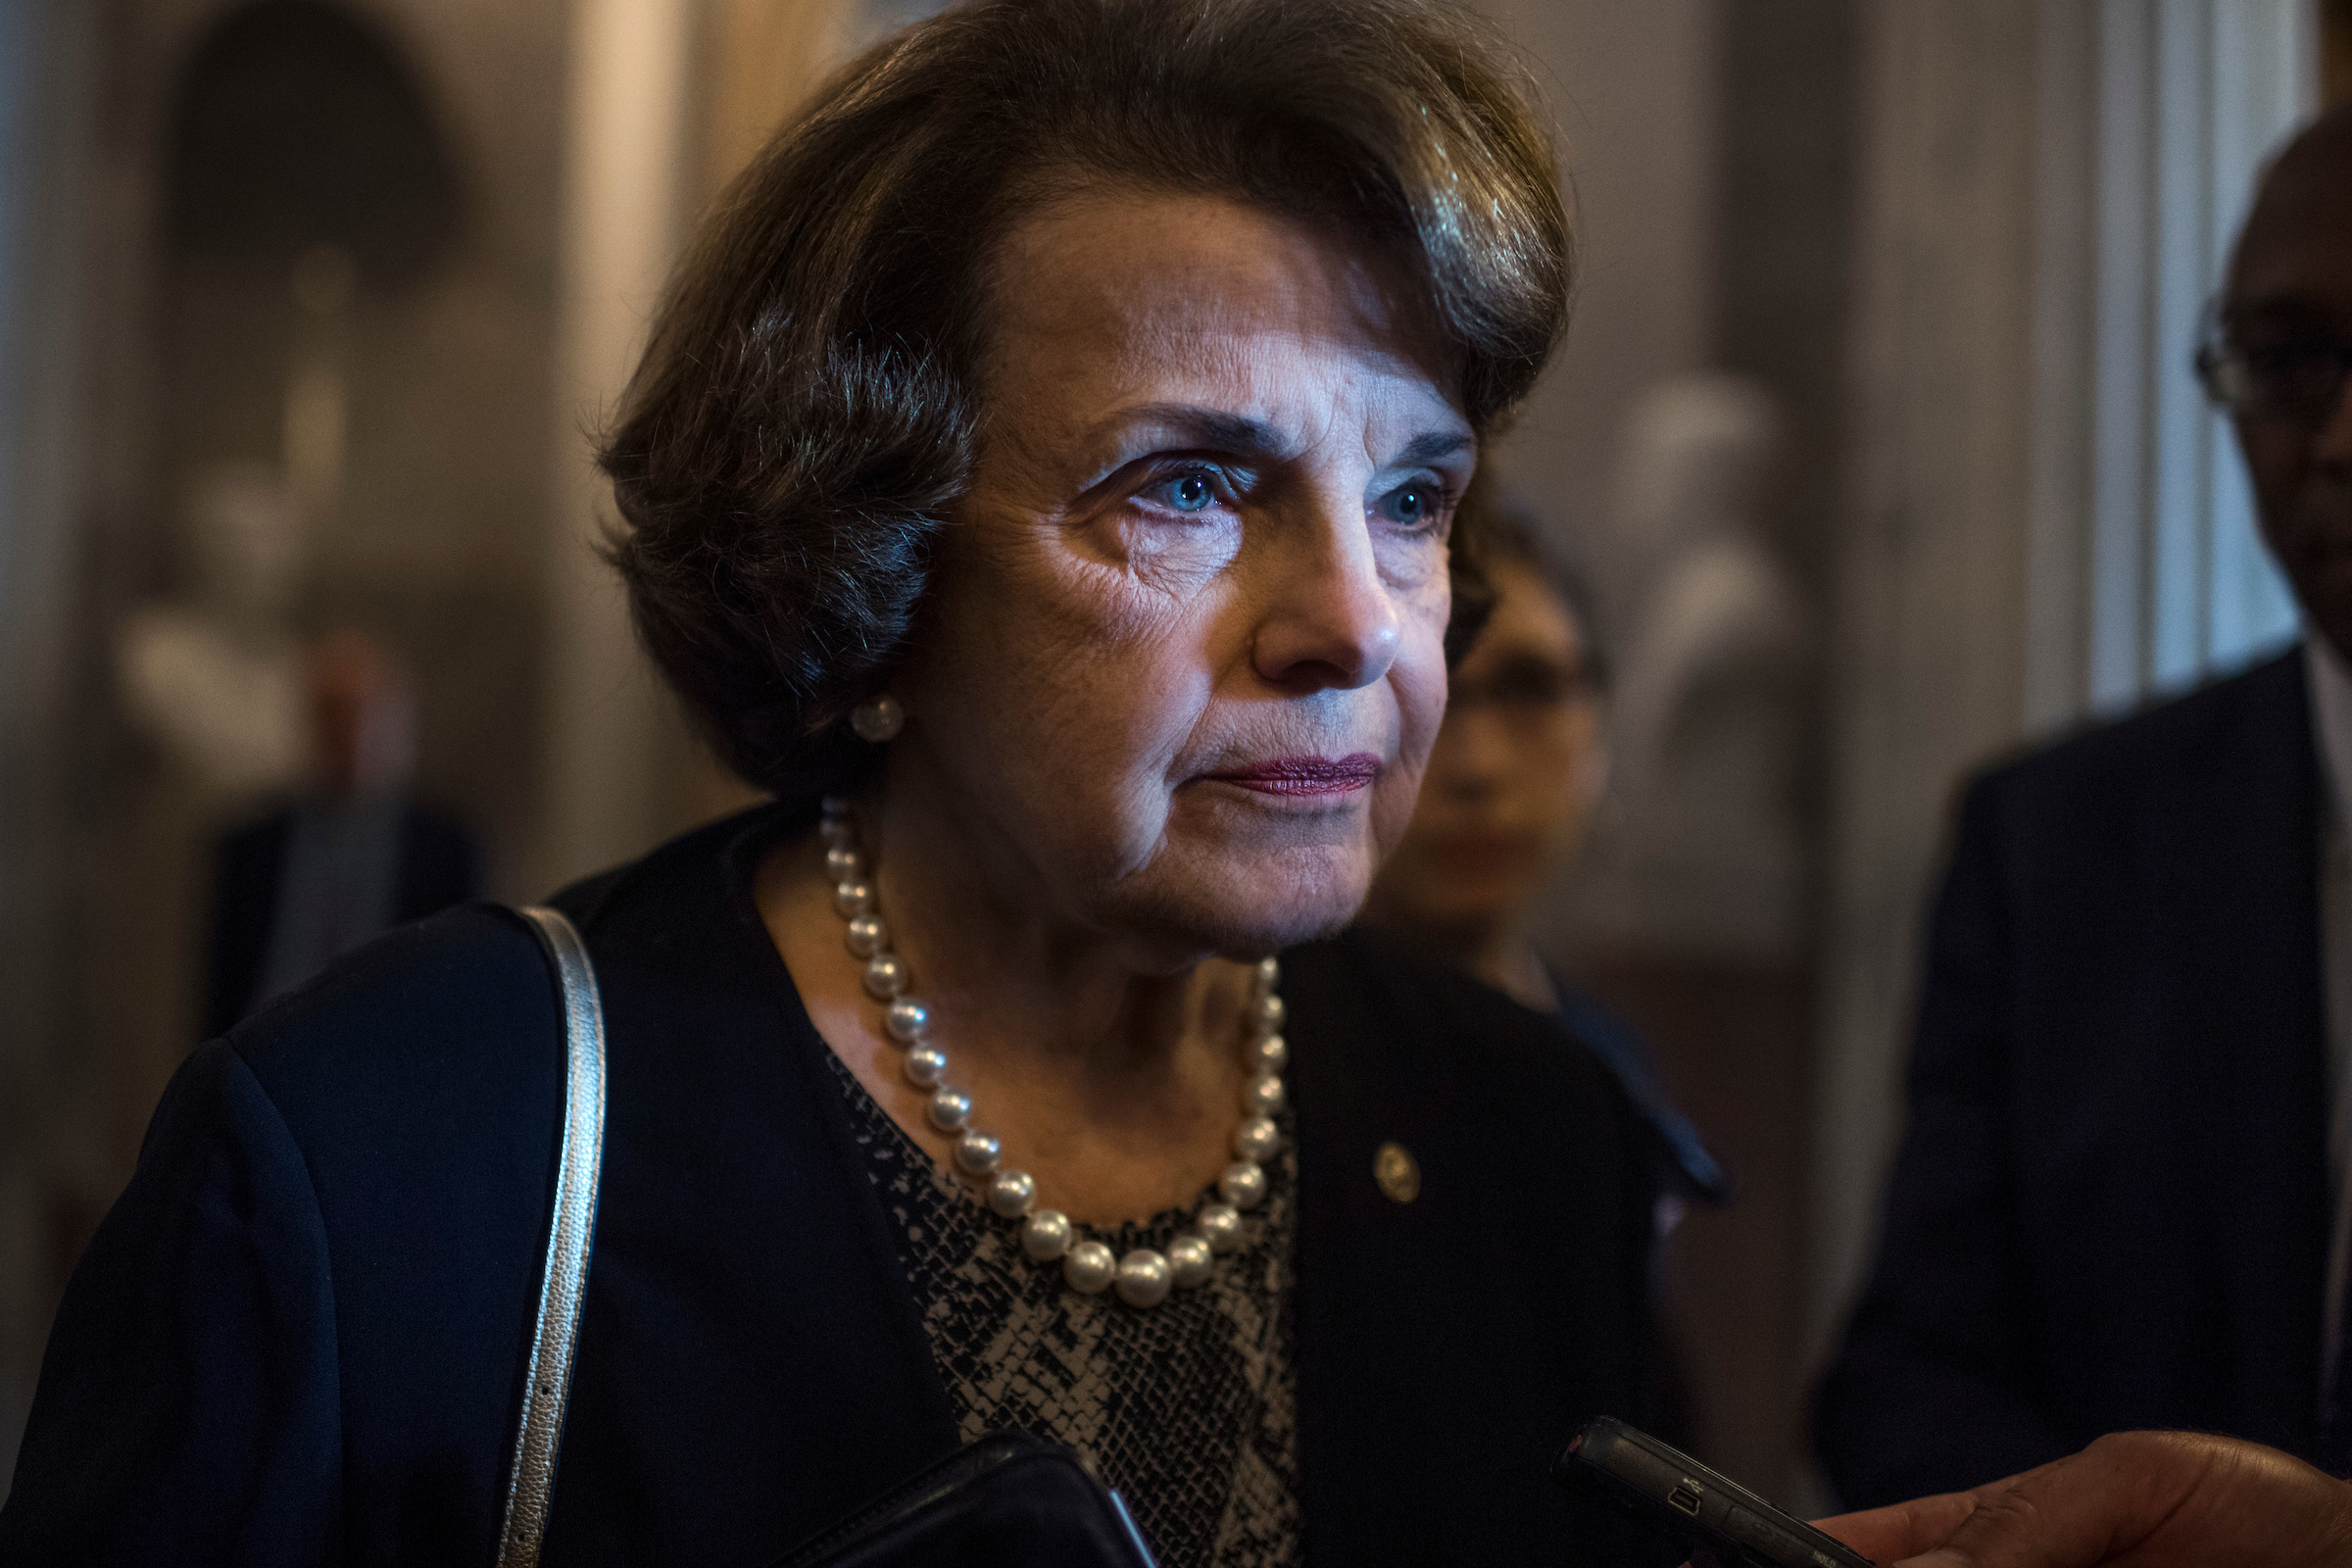 UNITED STATES - JULY 18: Sen. Dianne Feinstein, D-Calif., talks with reporters before the Senate Policy Luncheons in the Capitol on July 18, 2017. (Photo By Tom Williams/CQ Roll Call)